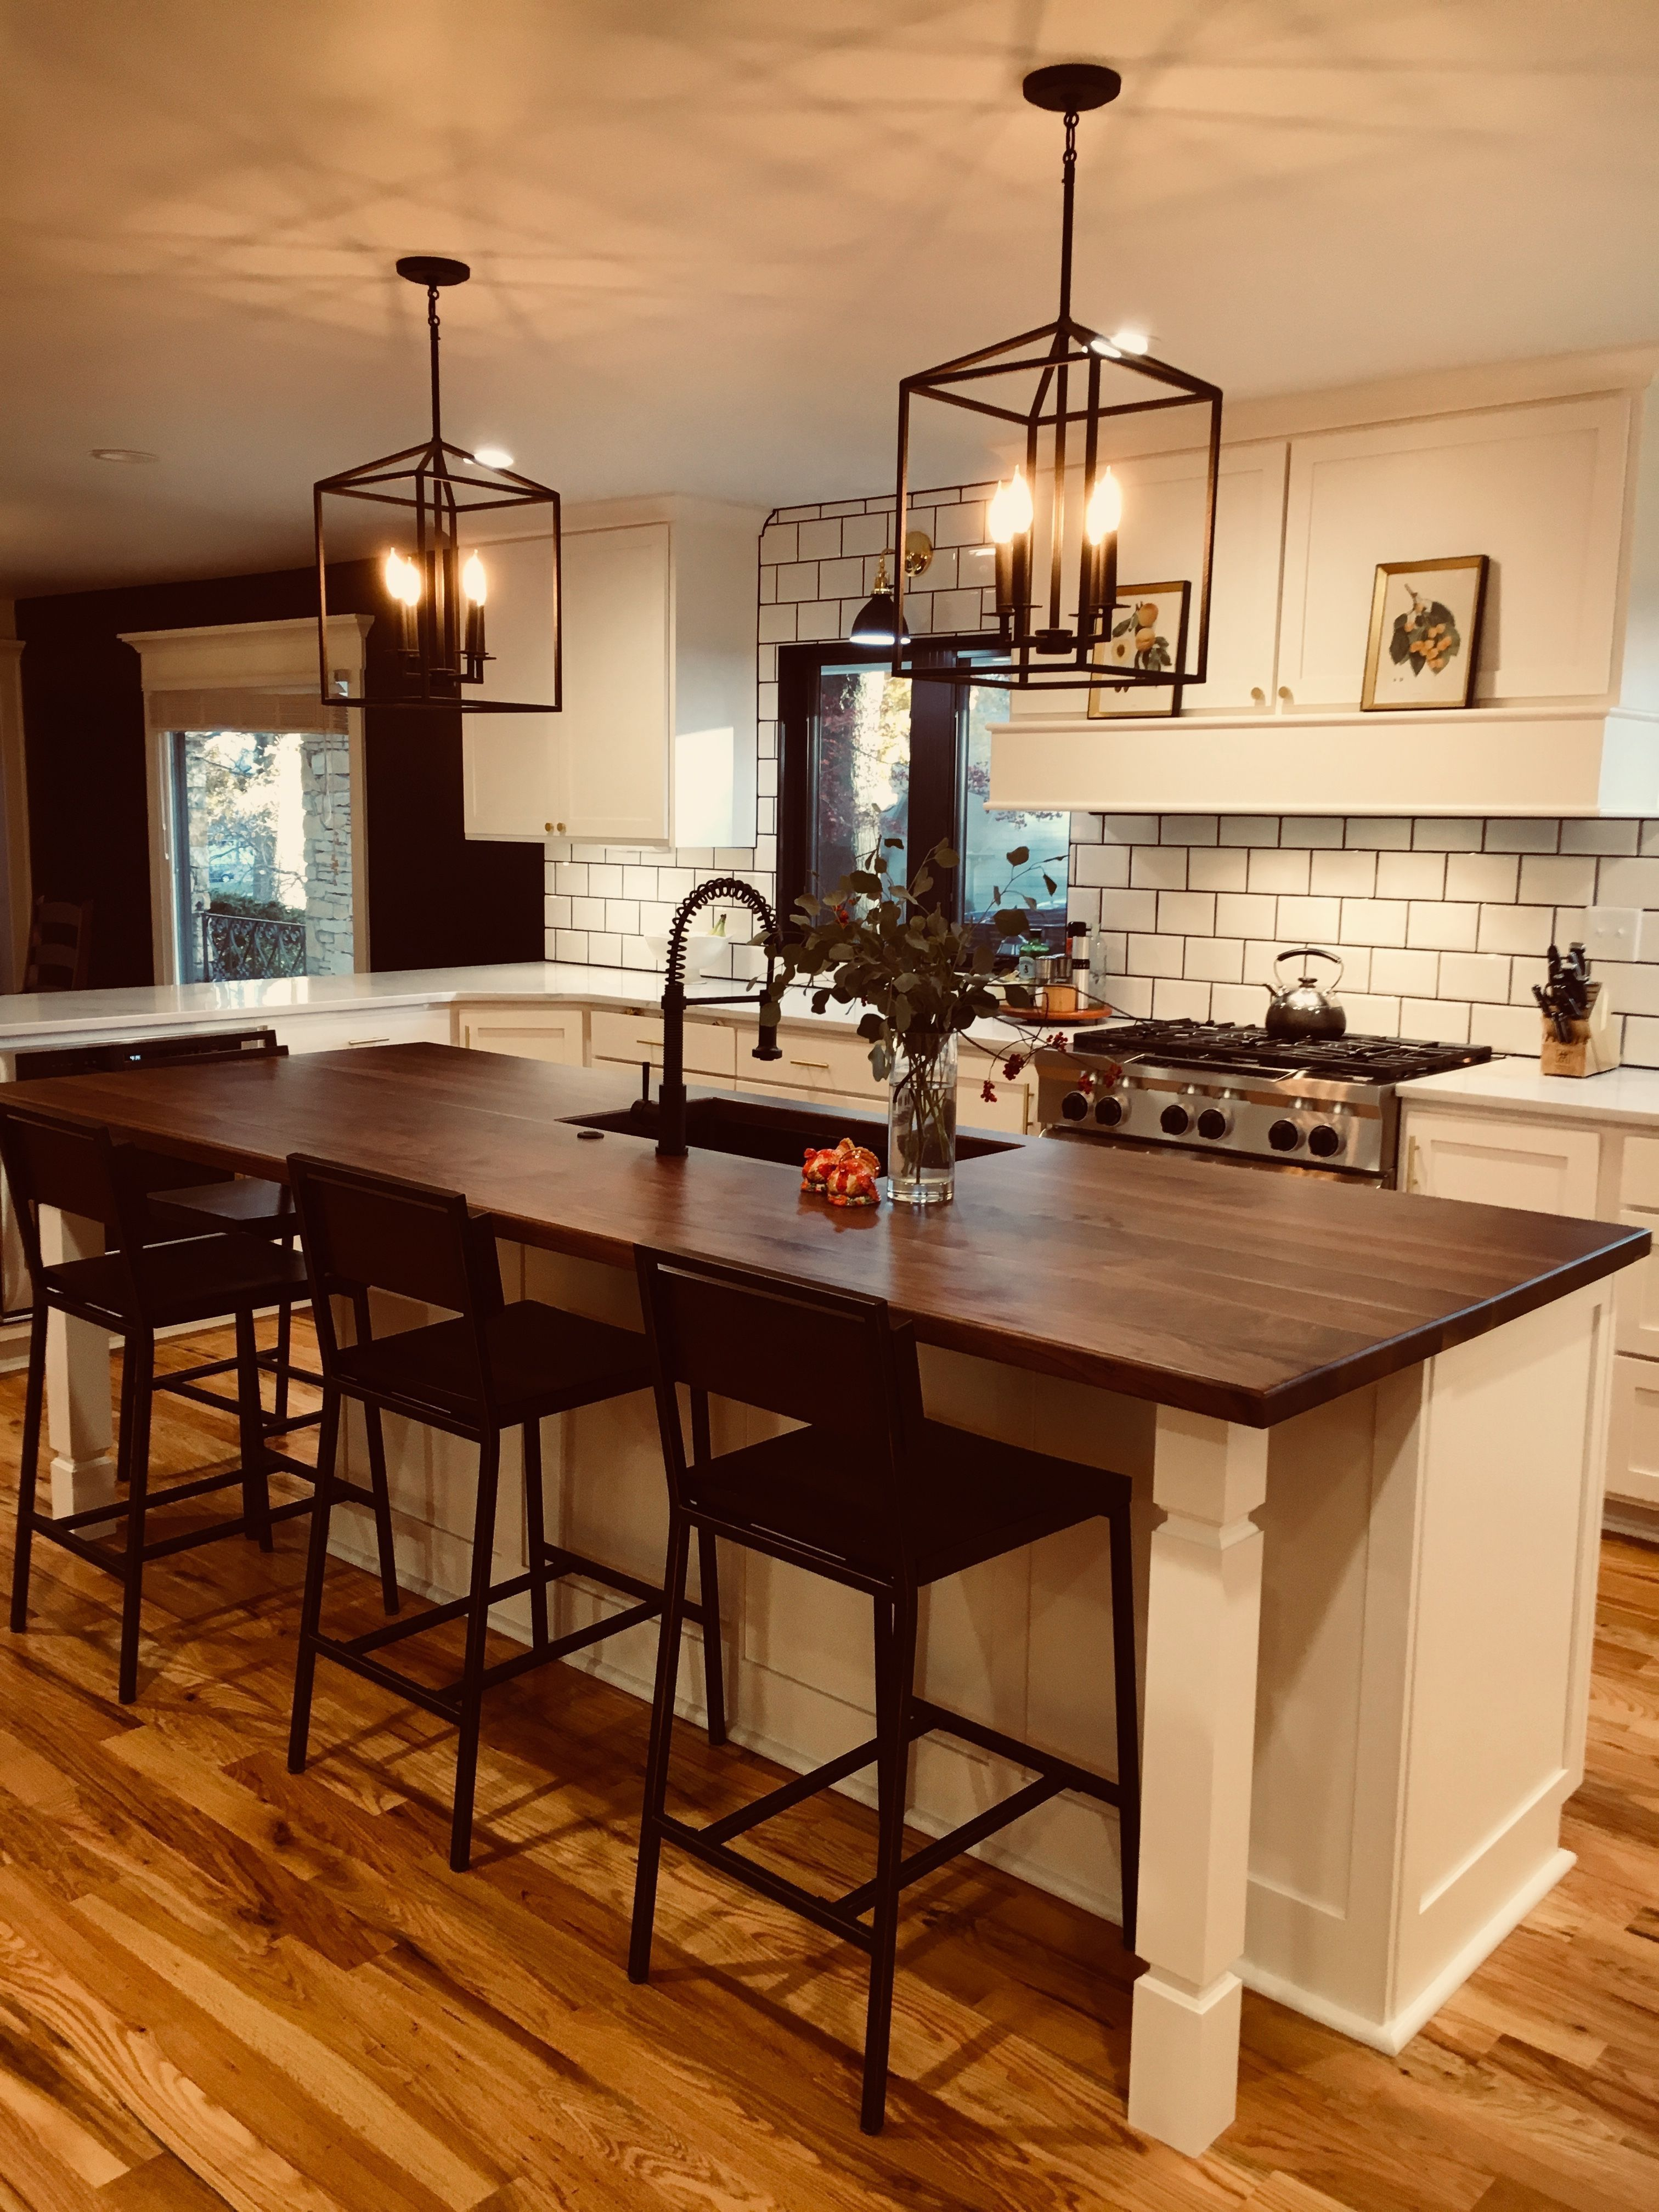 Top best kitchen countertop designs and ideas in rustic remodel modern farmhouse kitchens also rh pinterest